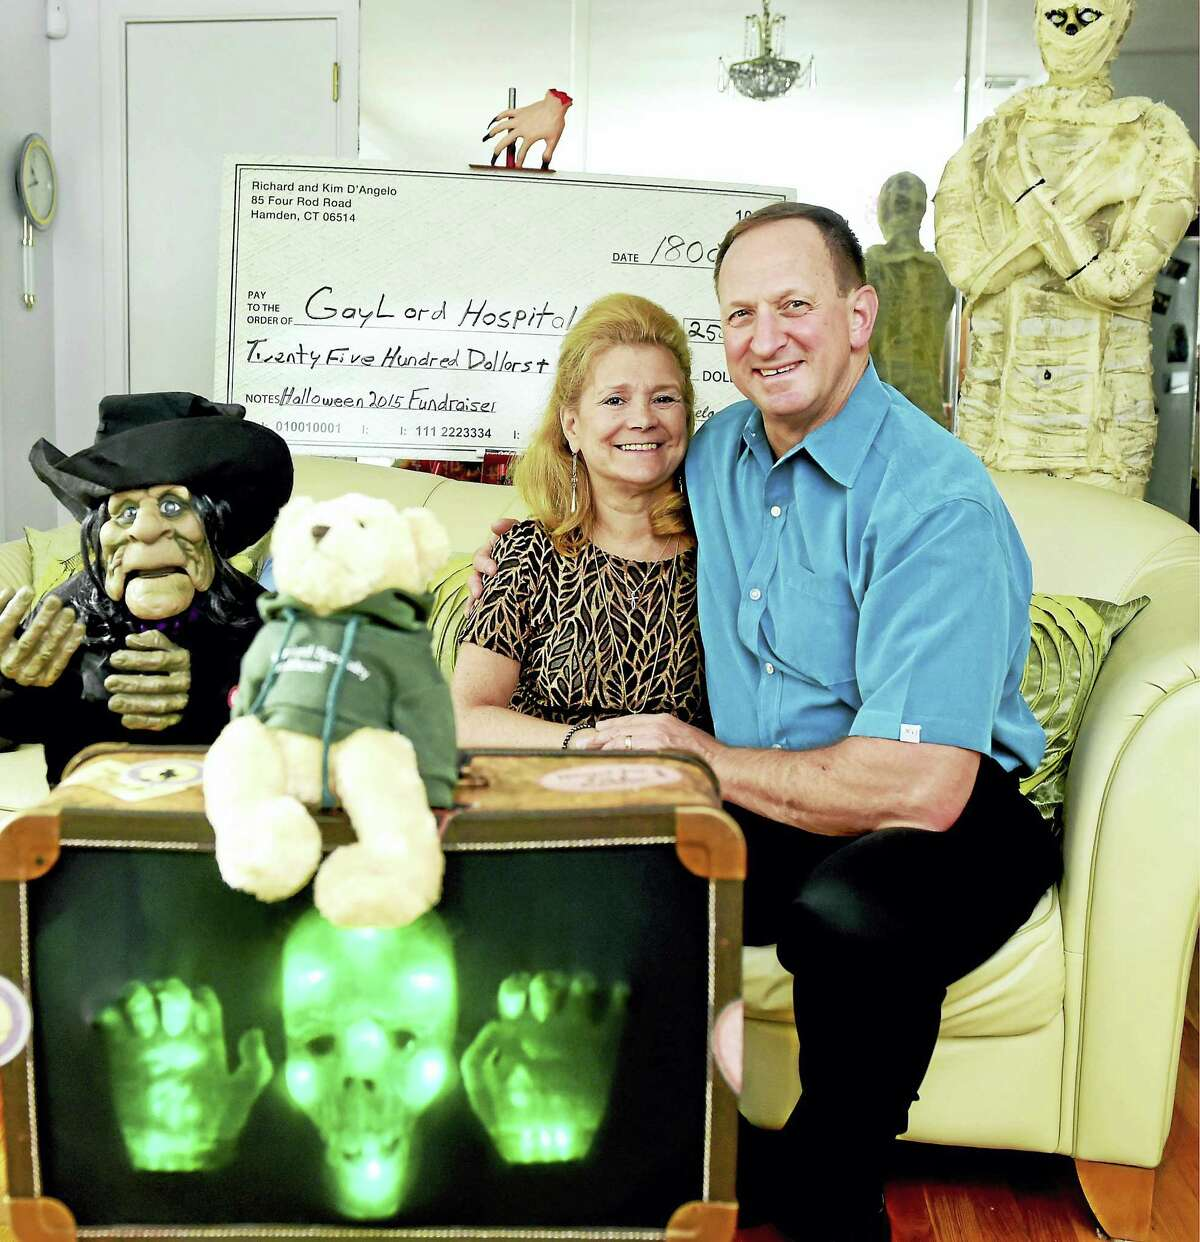 Kim D'Angelo with her husband, Richard, at their Hamden home Monday. Kim D'Angelo was a patient at Gaylord Hospital and has been fundraising for Gaylord by staging Halloween parties.